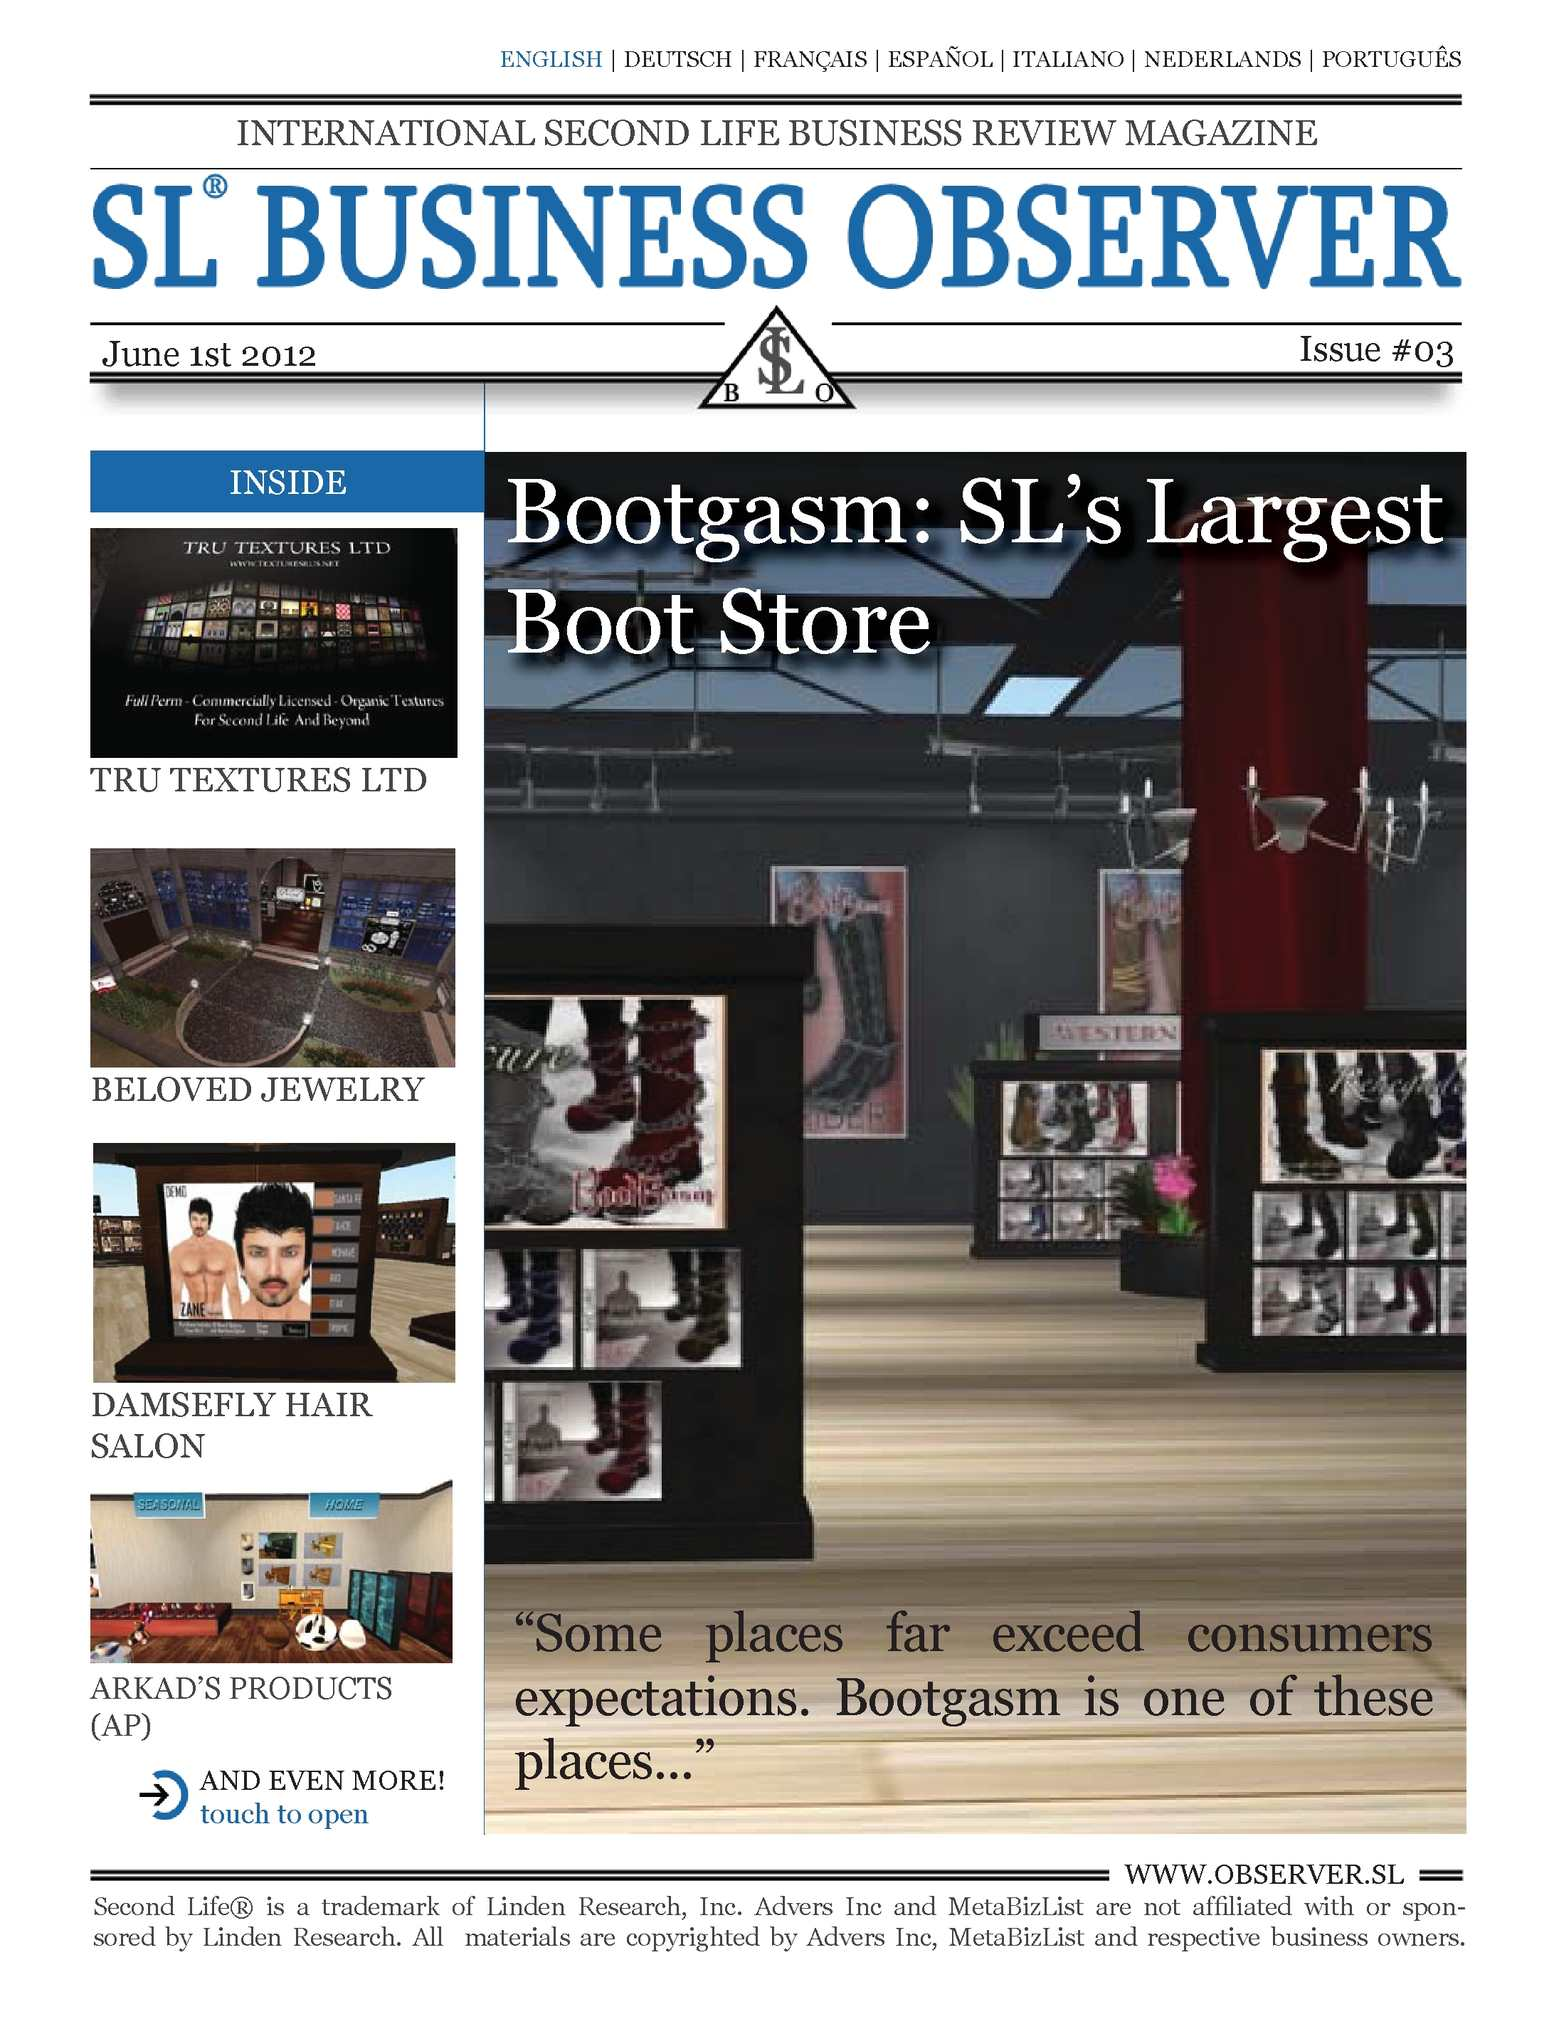 Calaméo - SL Business Observer #03, English